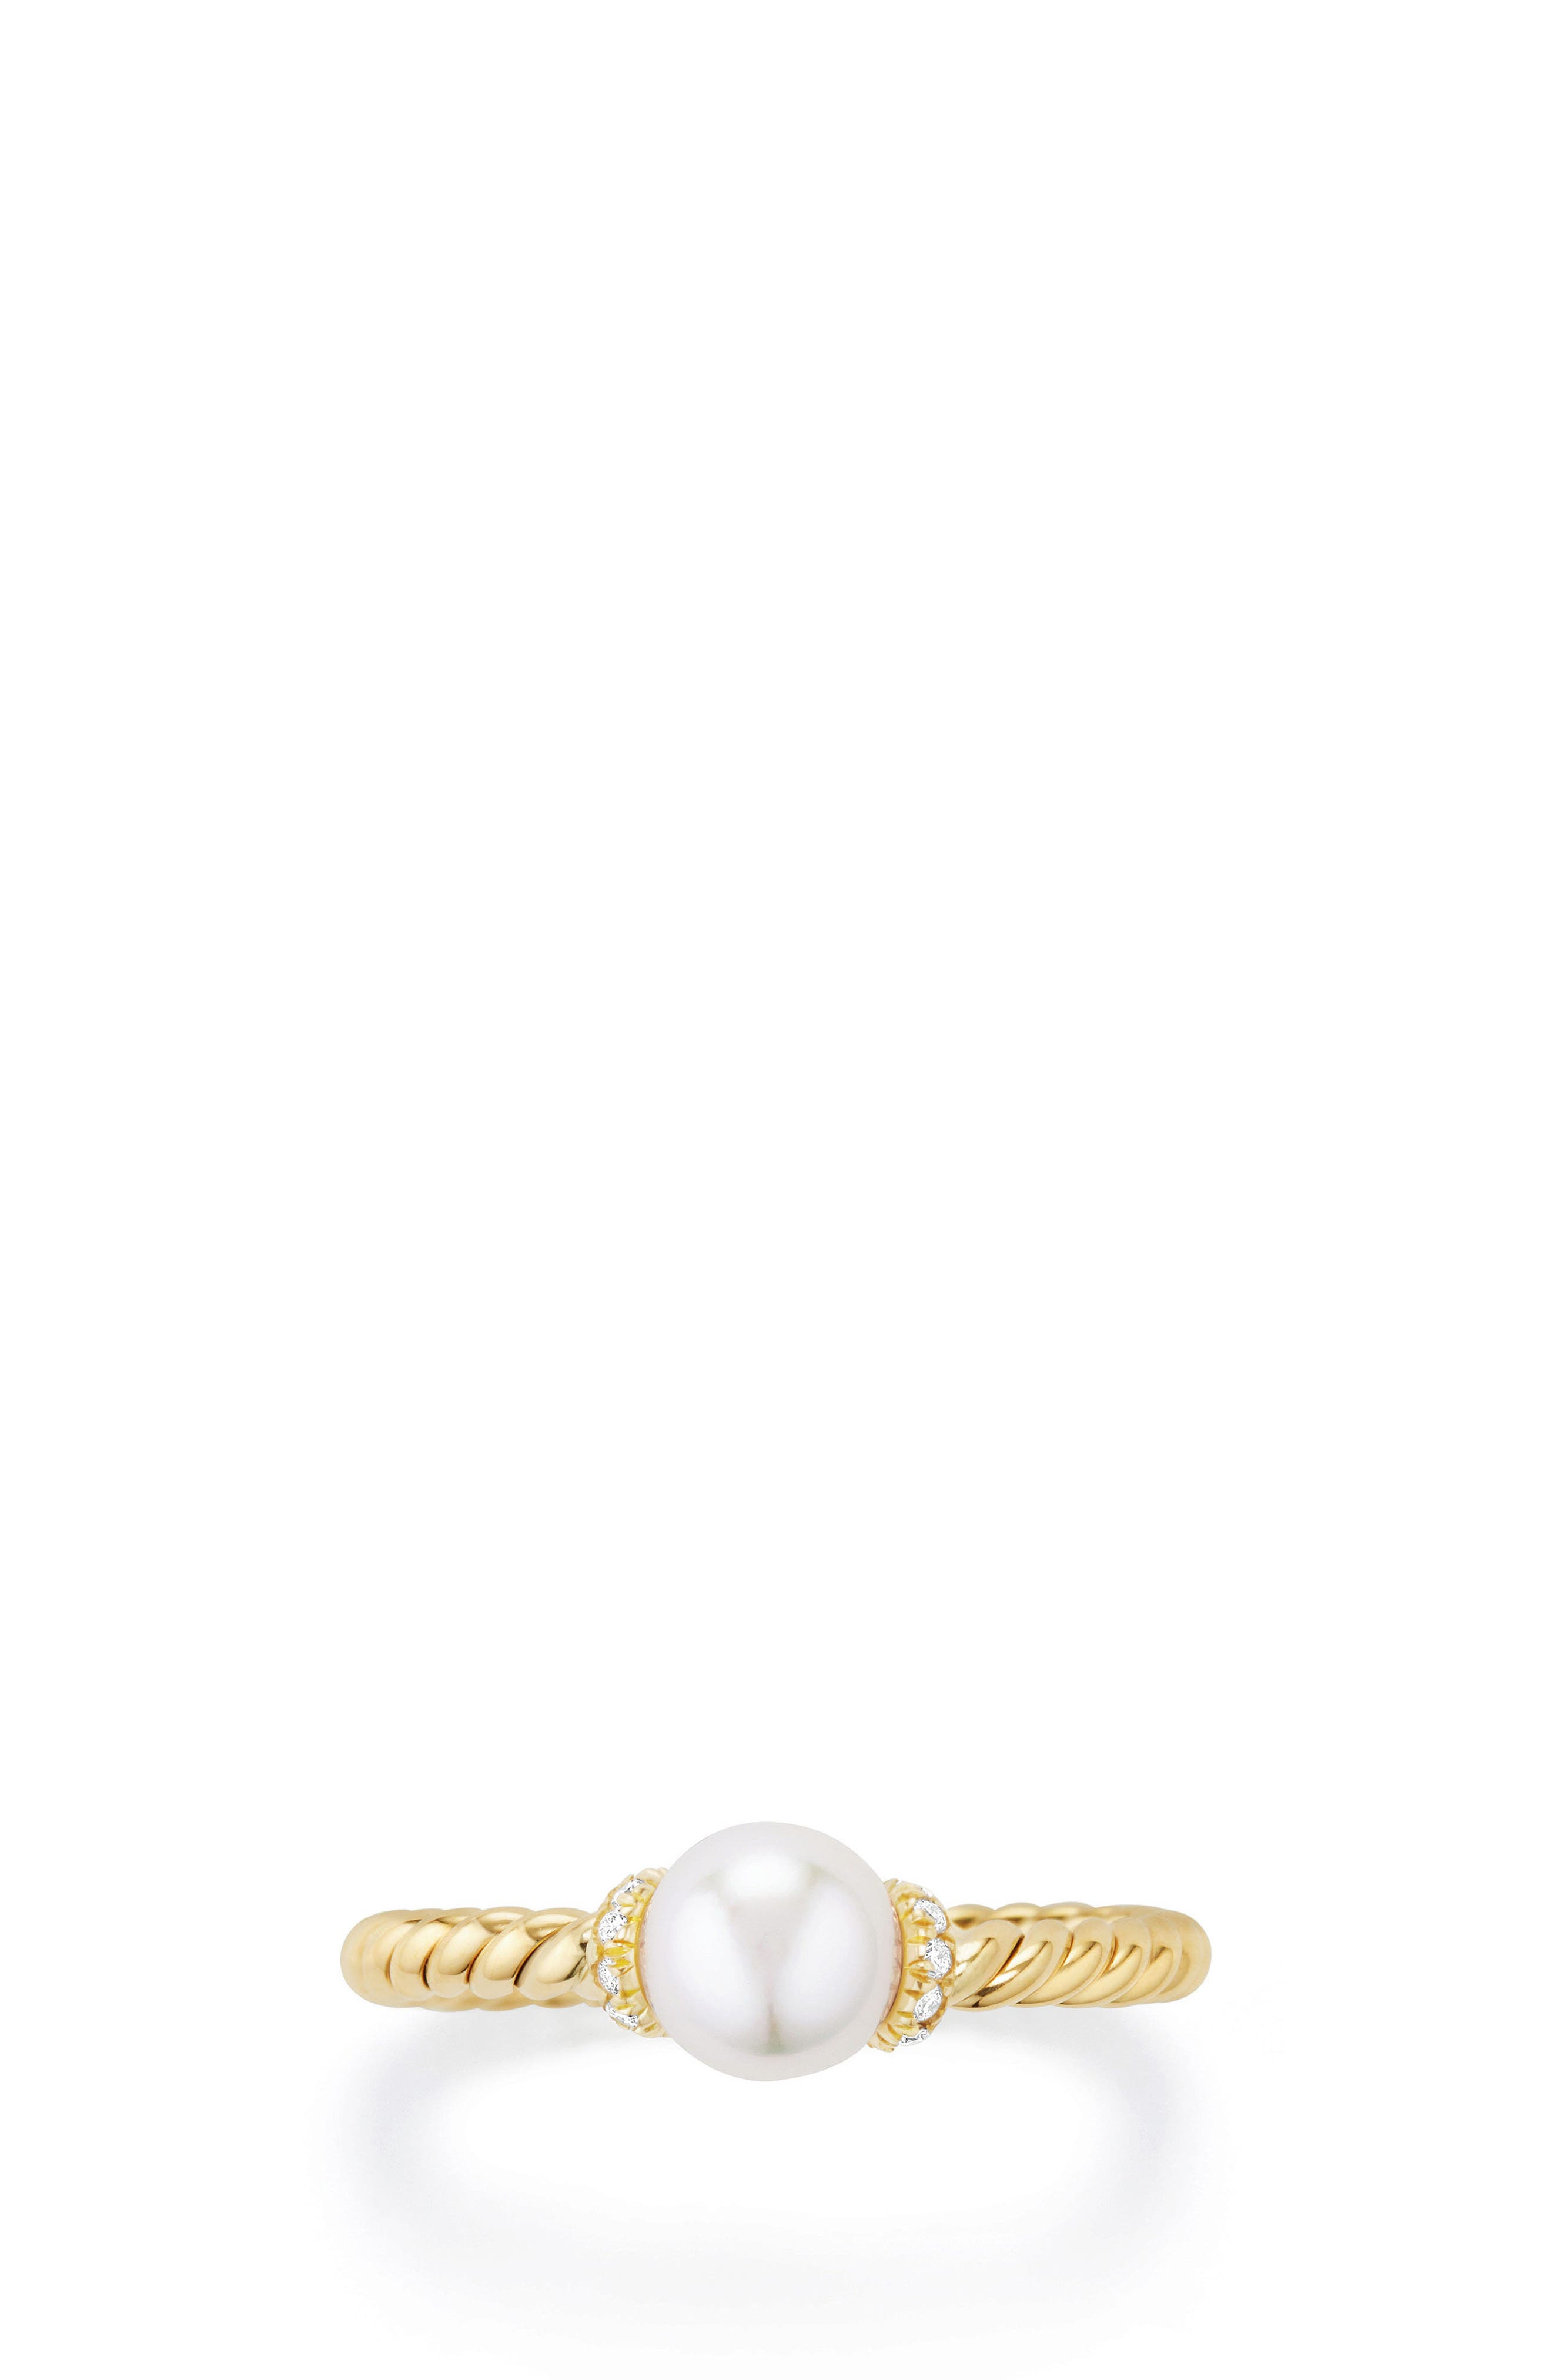 Solari Station Ring with Pearl & Diamonds in 18K Gold,                             Alternate thumbnail 3, color,                             YELLOW GOLD/ DIAMOND/ PEARL